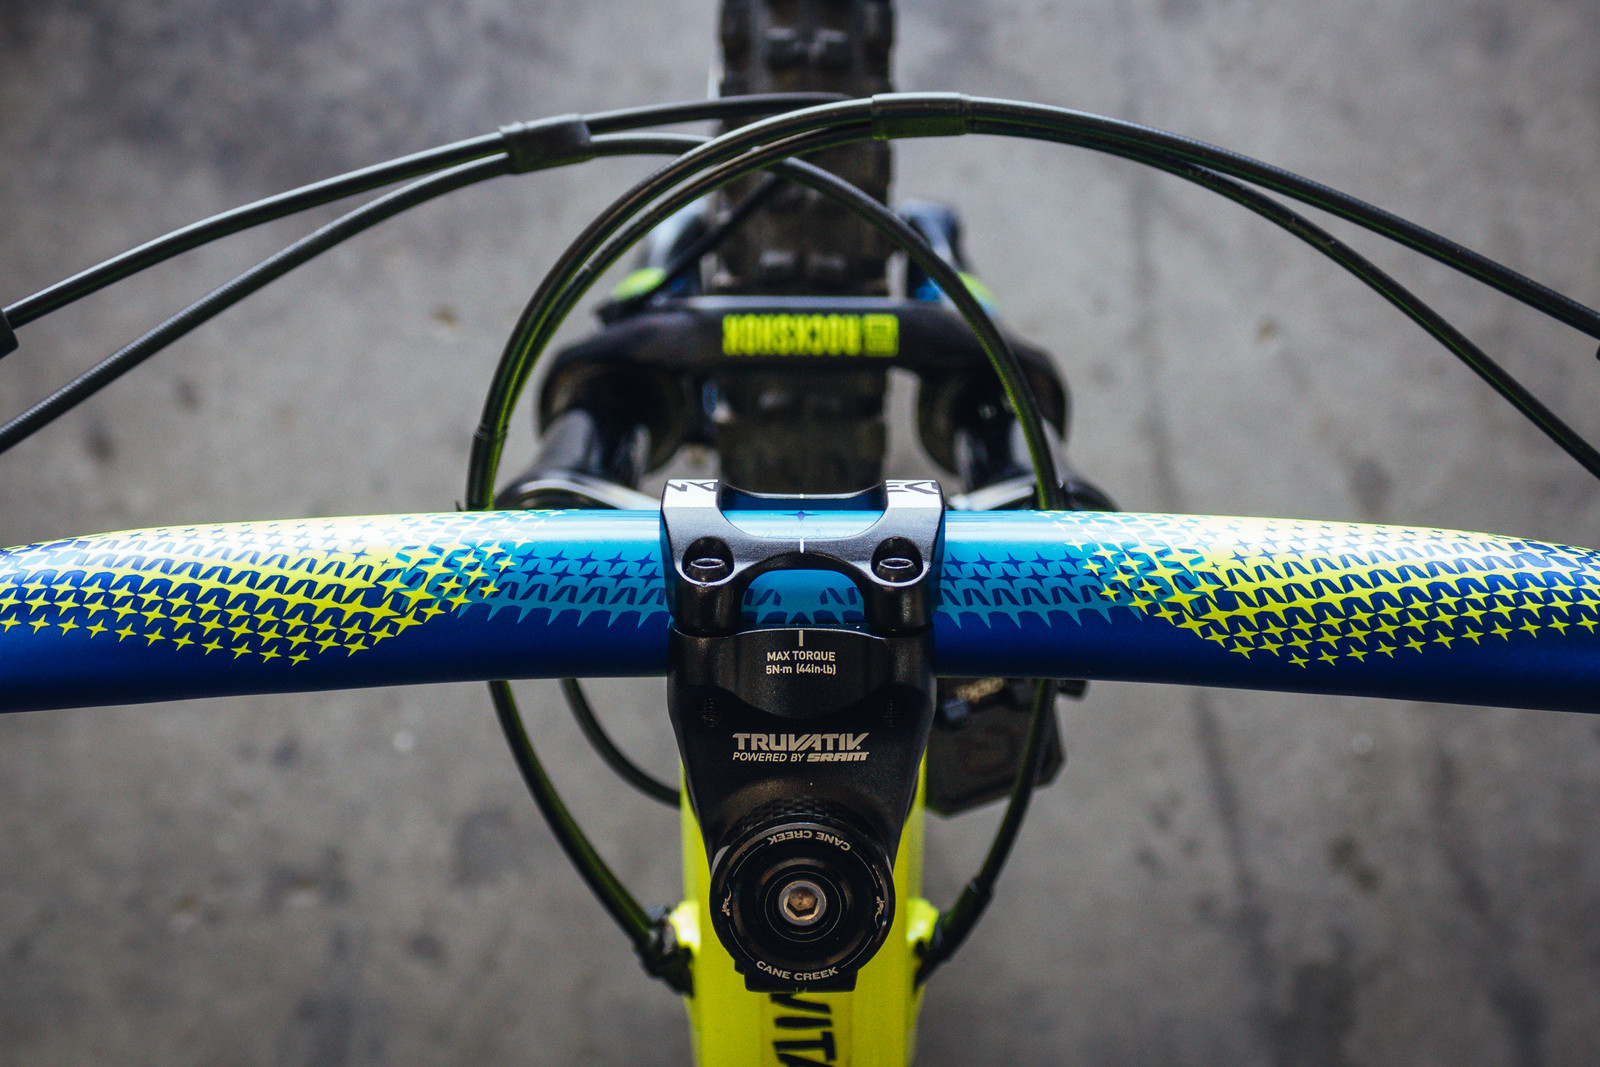 Sticker design for mountain bike - The Sticker Kits Will Work On Any Rockshox Fork With 35mm Stanchions Including The Revelation Pike Lyrik And Boxxer